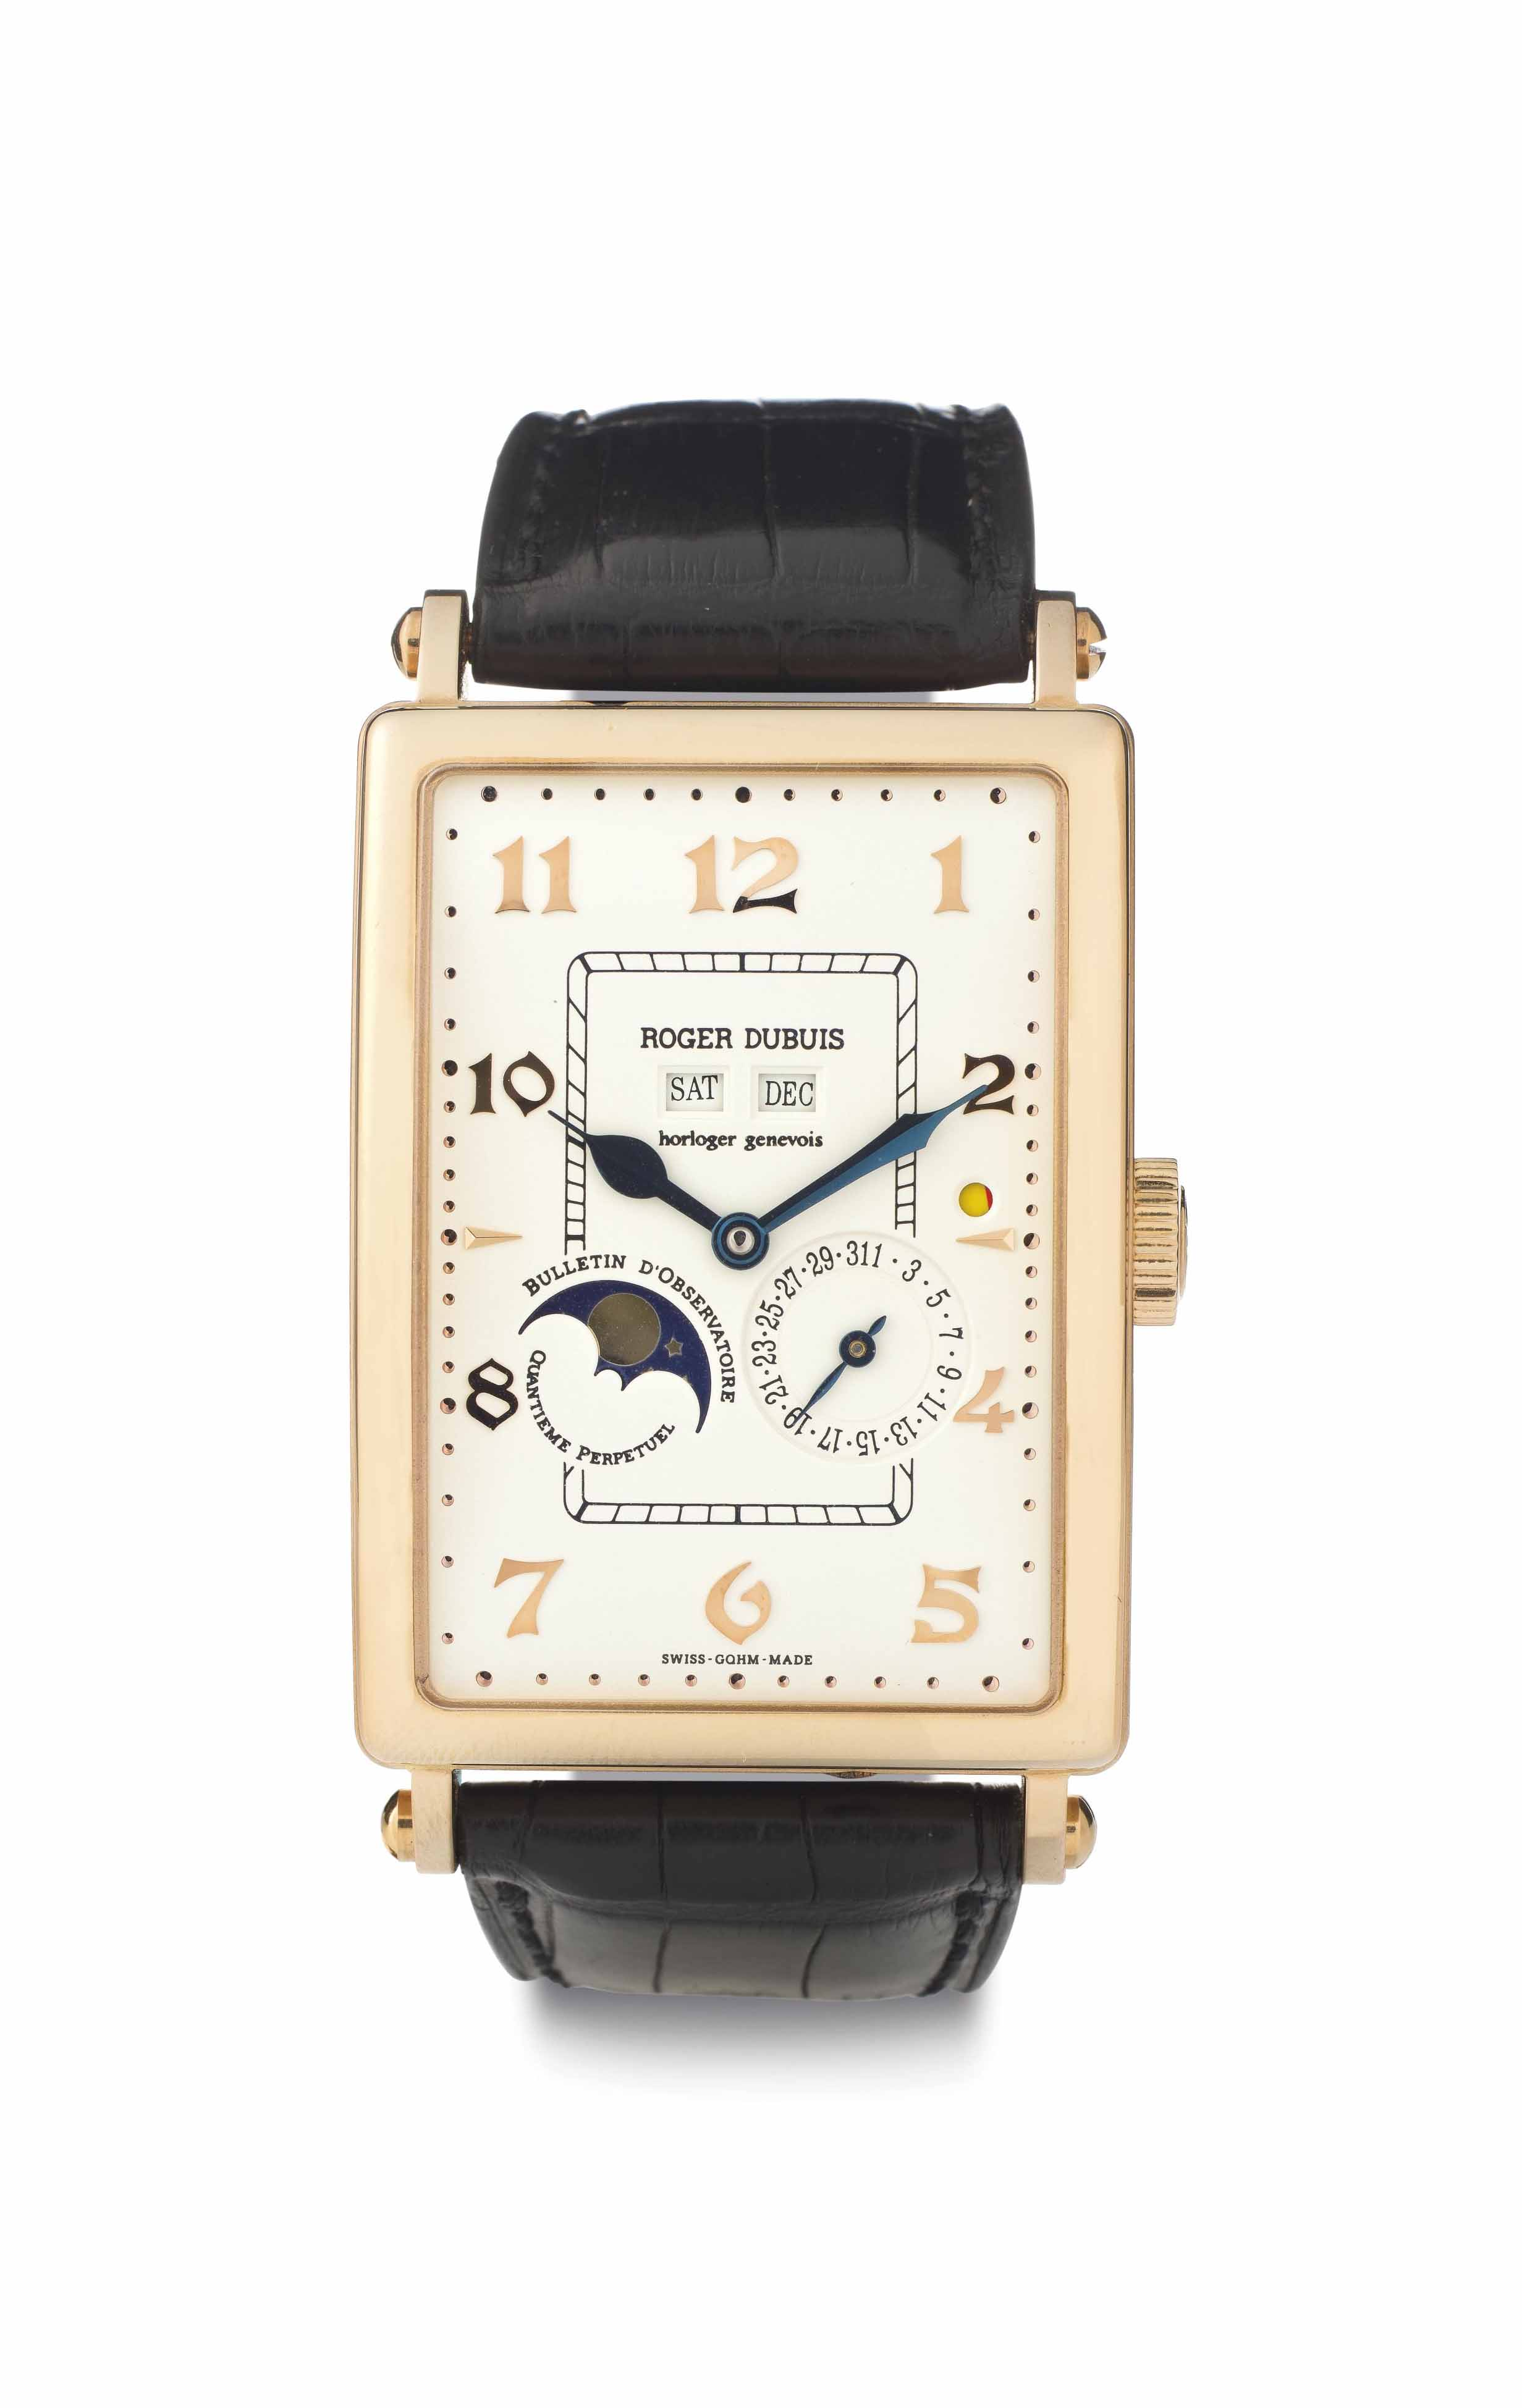 Roger Dubuis. A Limited Edition 18k Pink Gold Automatic Perpetual Calendar Wristwatch with Leap Year Indication and Moon Phases